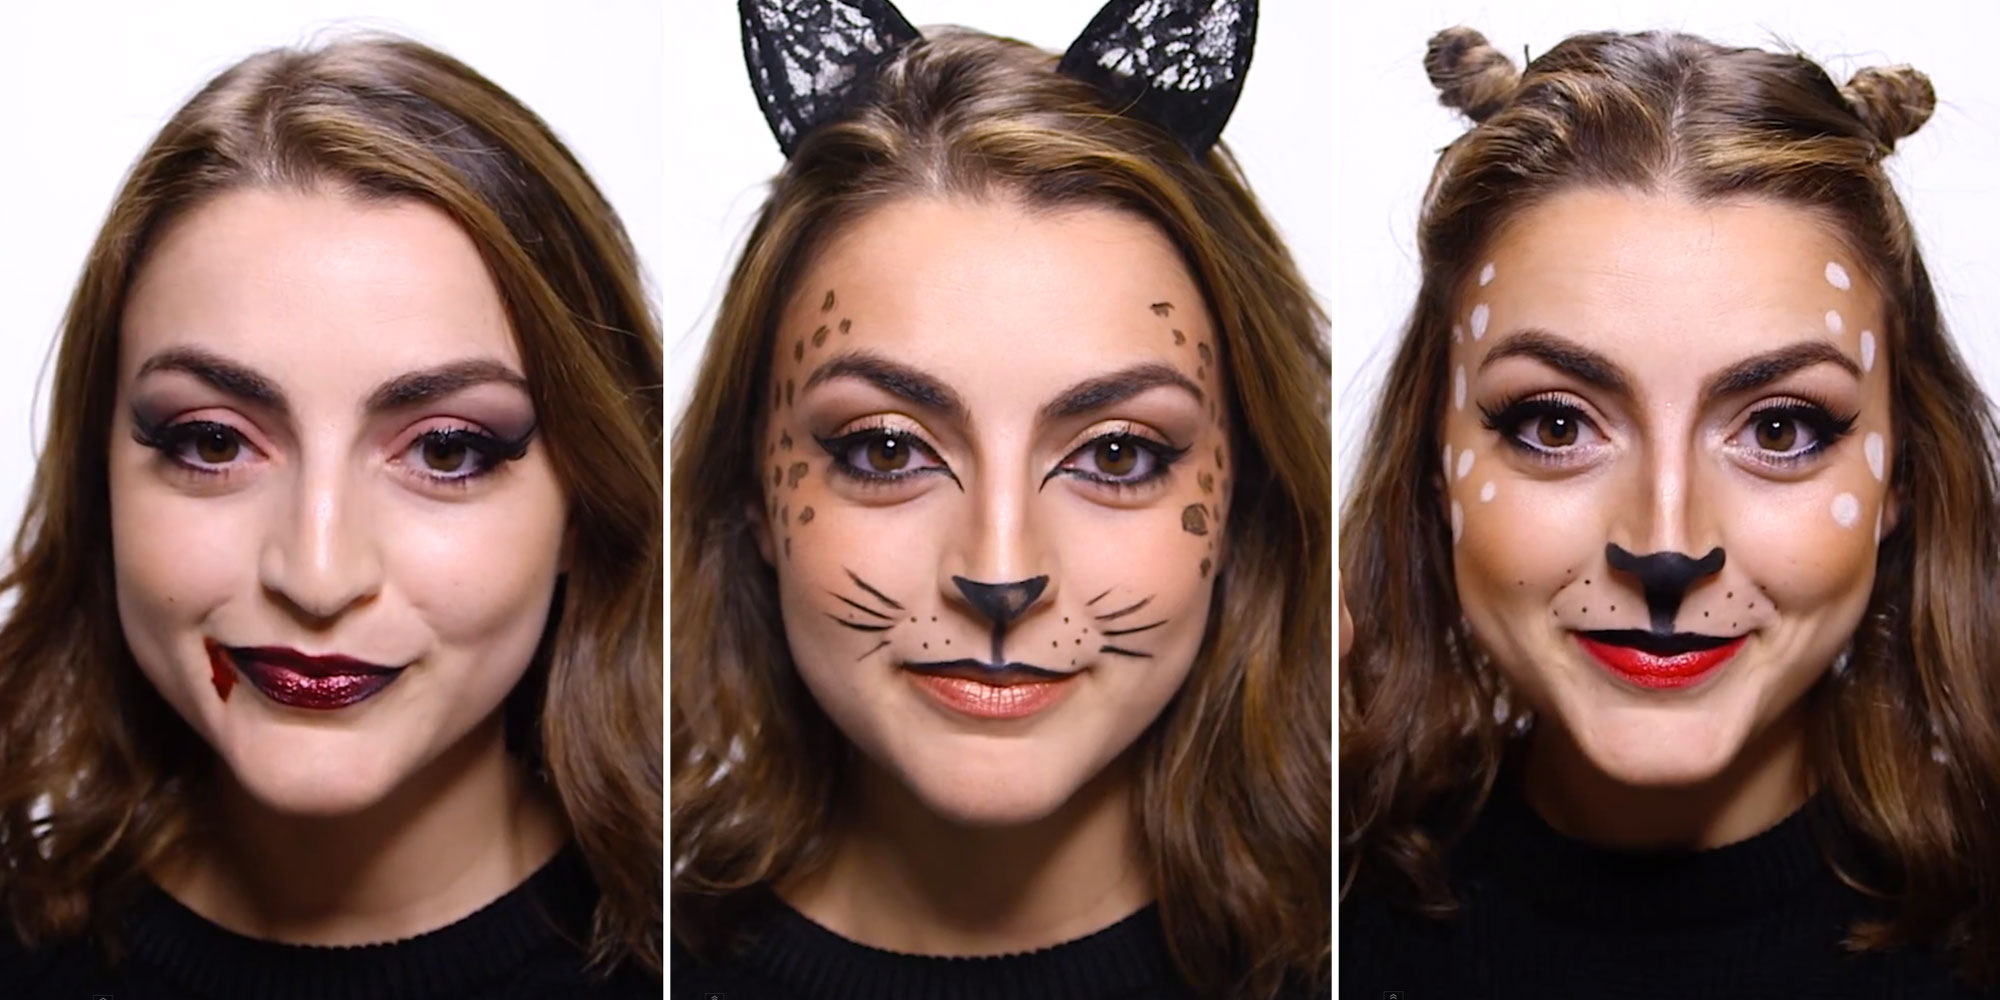 7a4a761d9 Easy Makeup for a Killer Halloween Look! - The Original Mane 'n Tail |  Personal Care